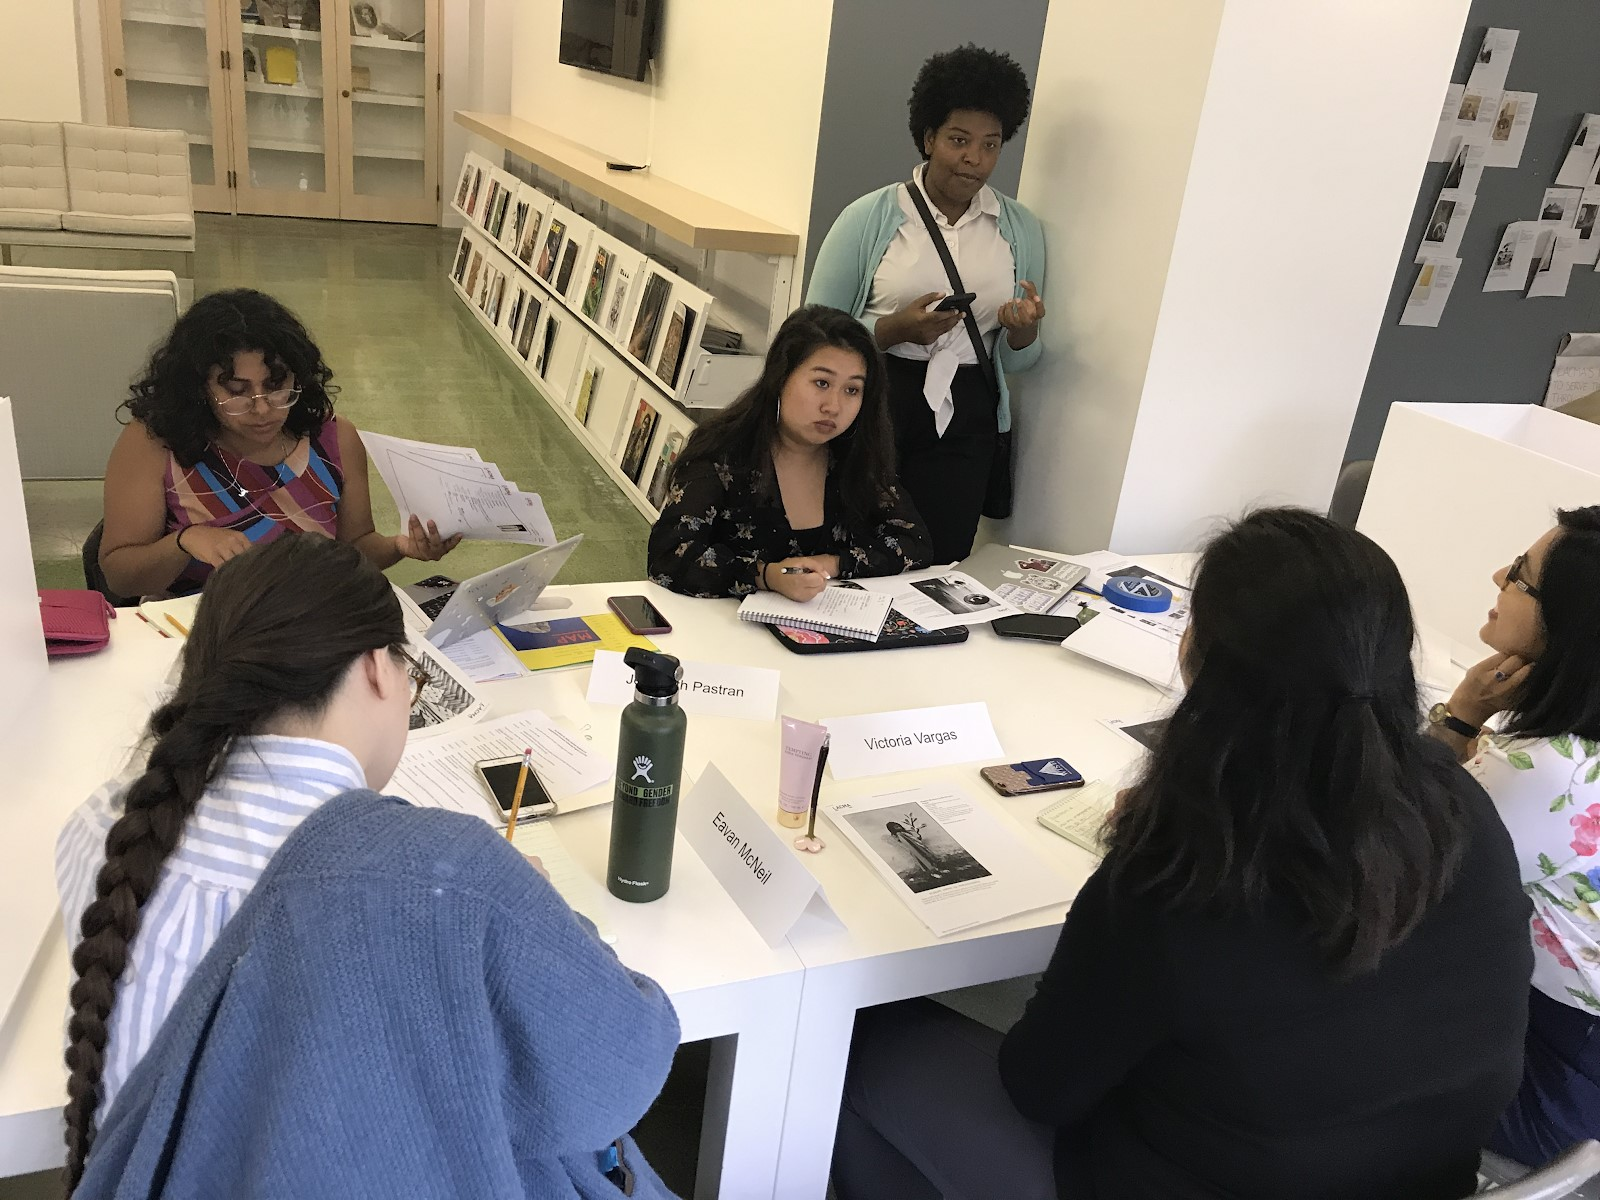 The 2019 Mellon Summer Academy students: Jenebrith Pastran, Emily Le, JaBrea Patterson-West (advisor), Melissa San Miguel, Victoria Vargas, and Eavan McNeil discussing their selected photographs, photo courtesy Hilary Walter